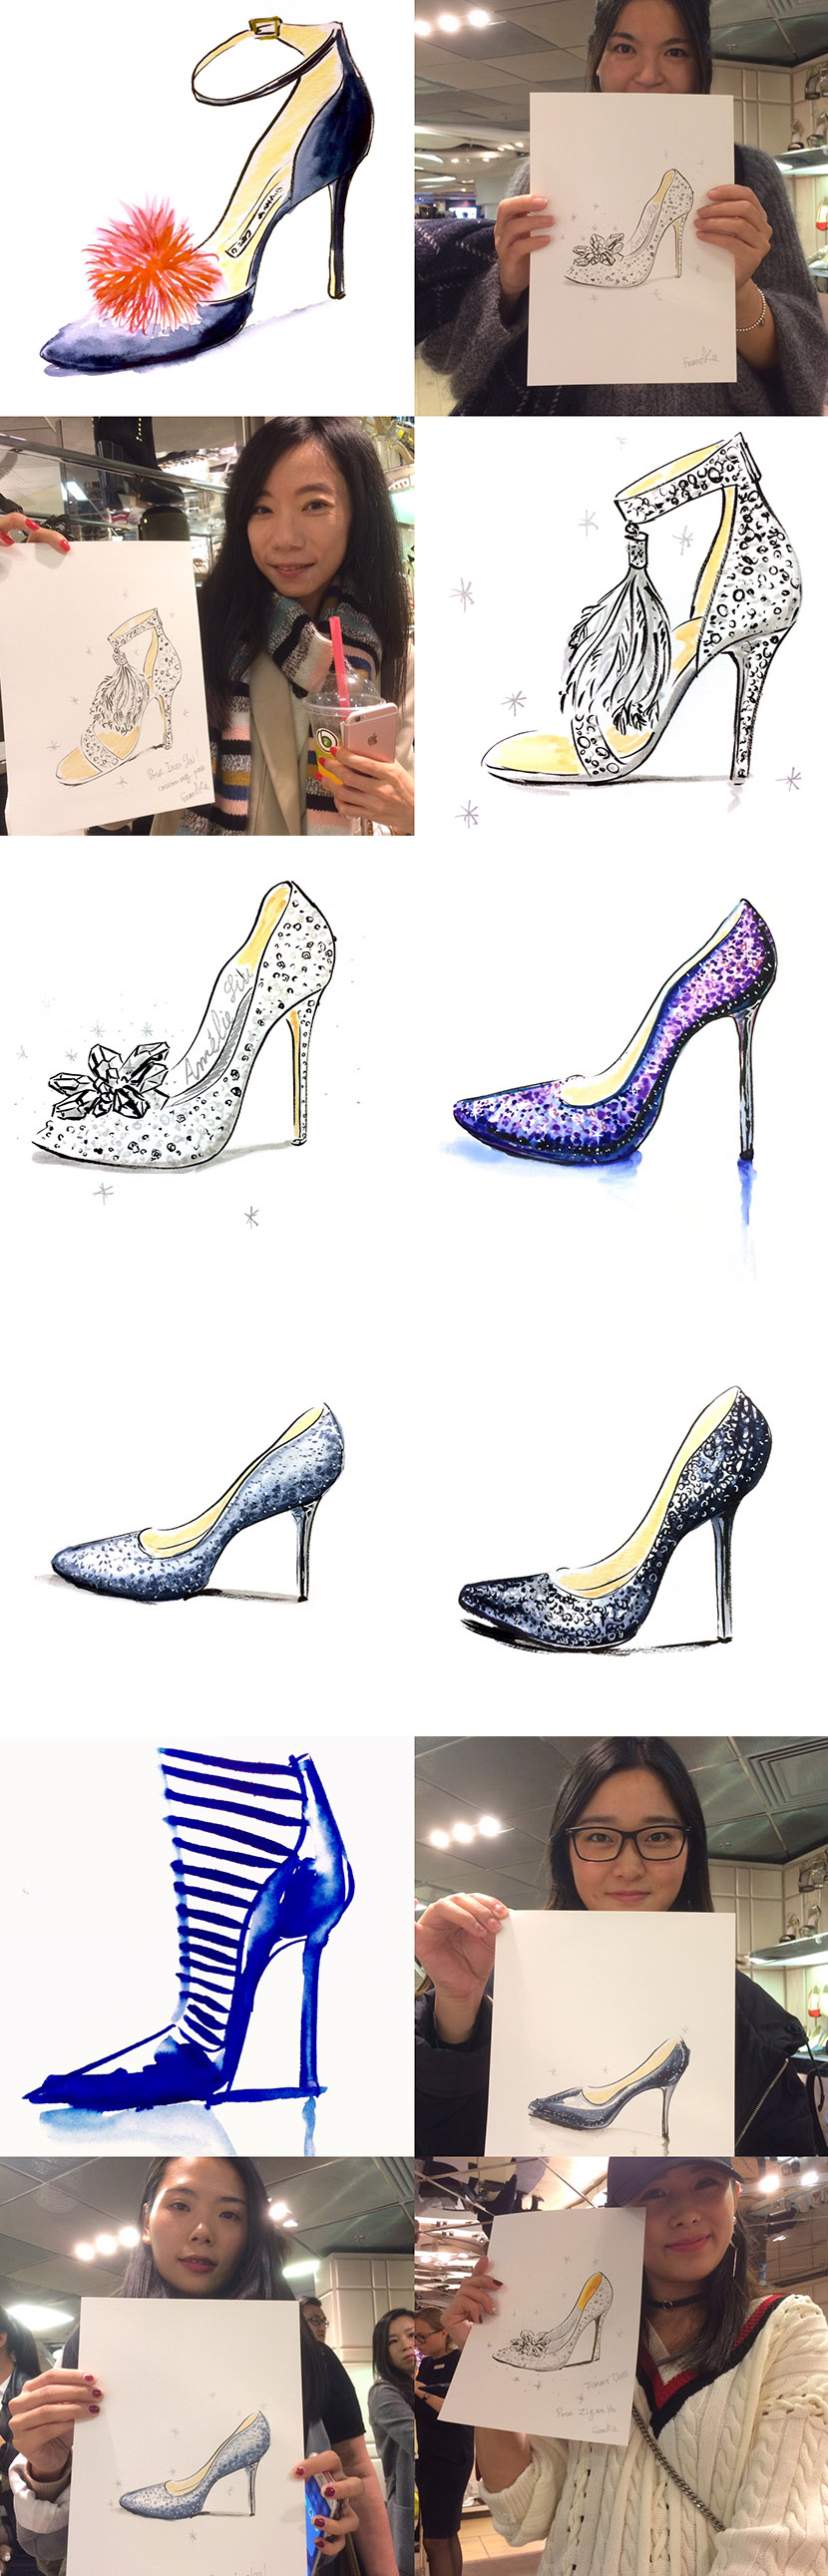 jimmy-choo-live-illustration-marie-claire-shoes-first-galeries-lafayette